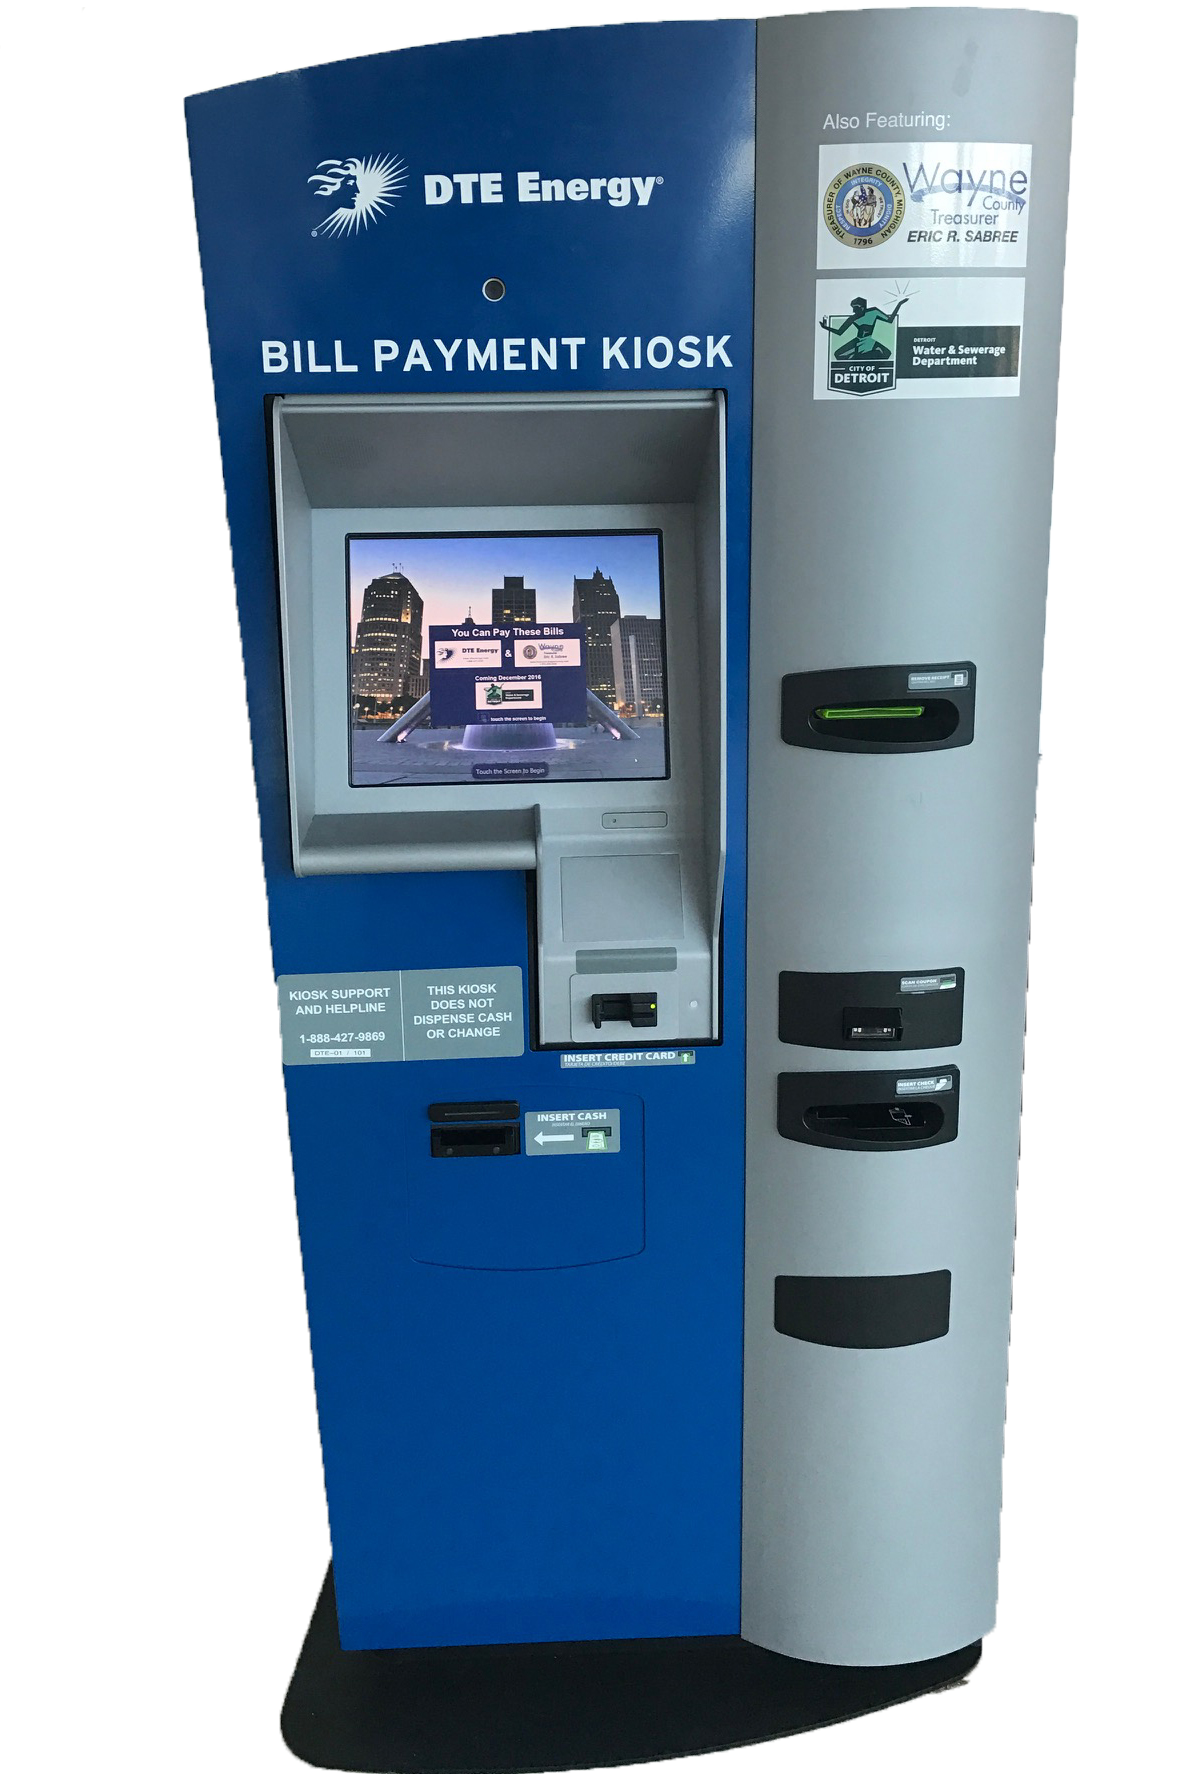 Conveniently Pay Your Detroit Water Bill at 28 Kiosk